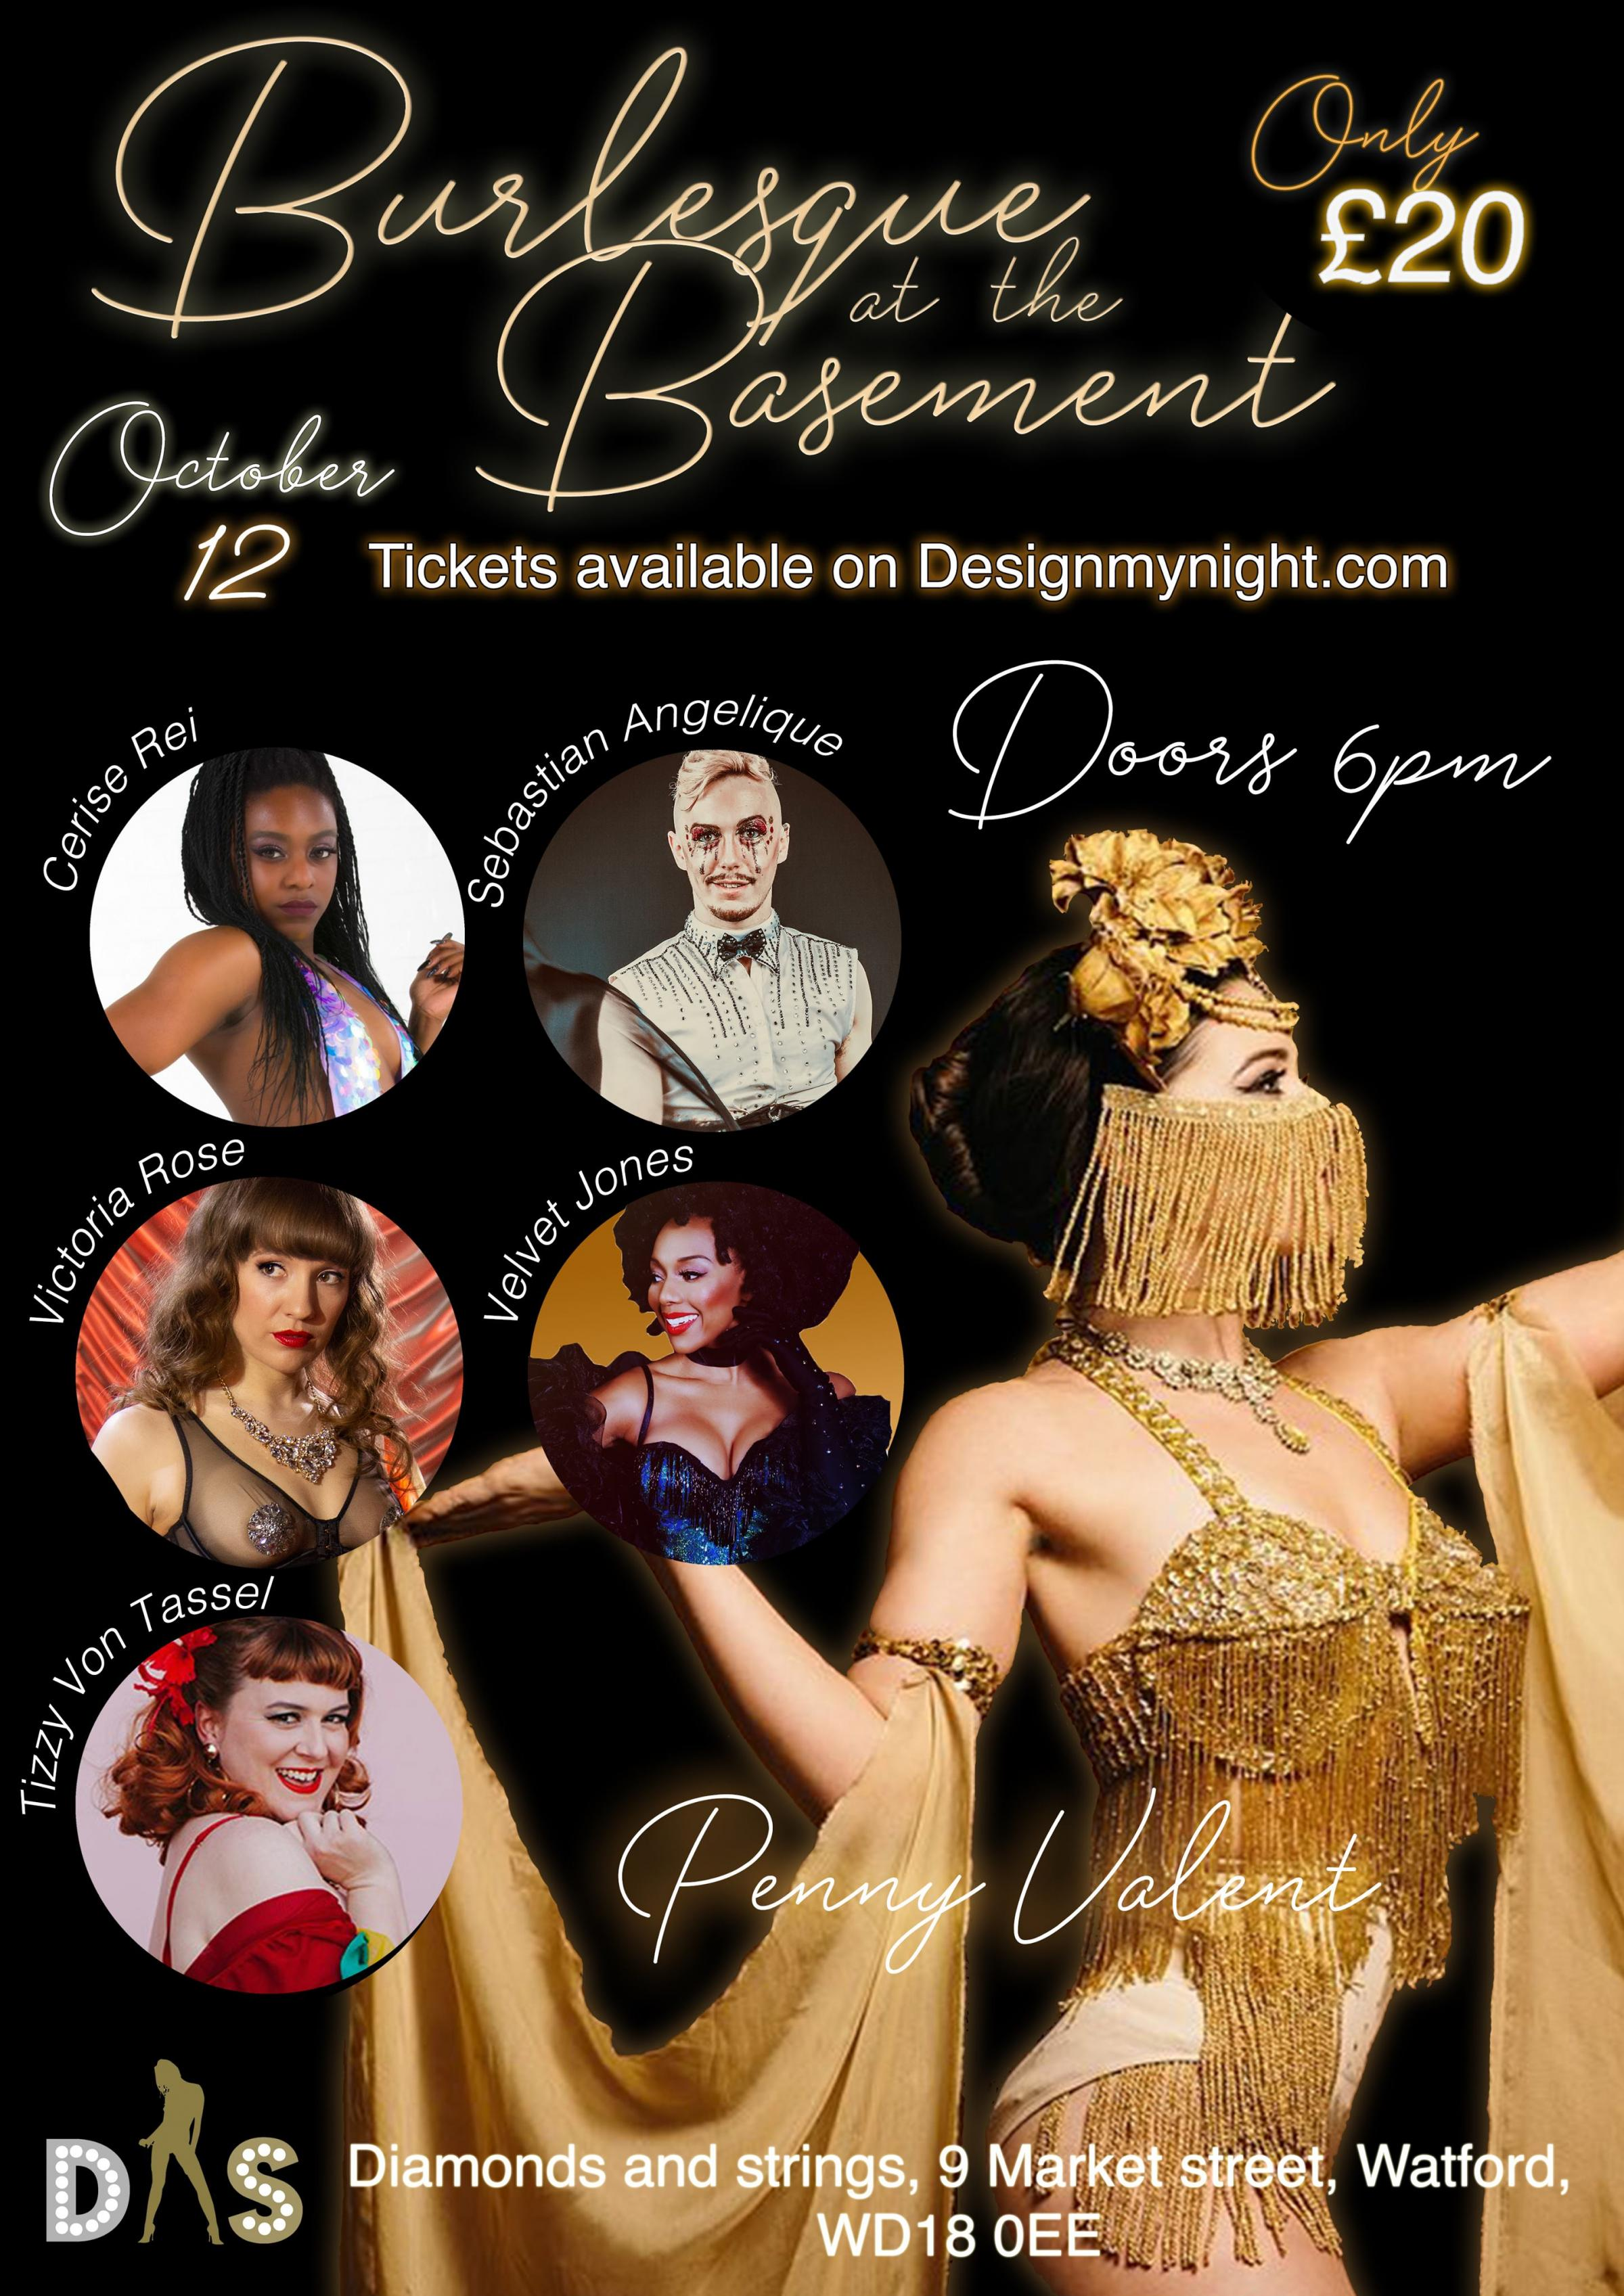 Burlesque at the Basement